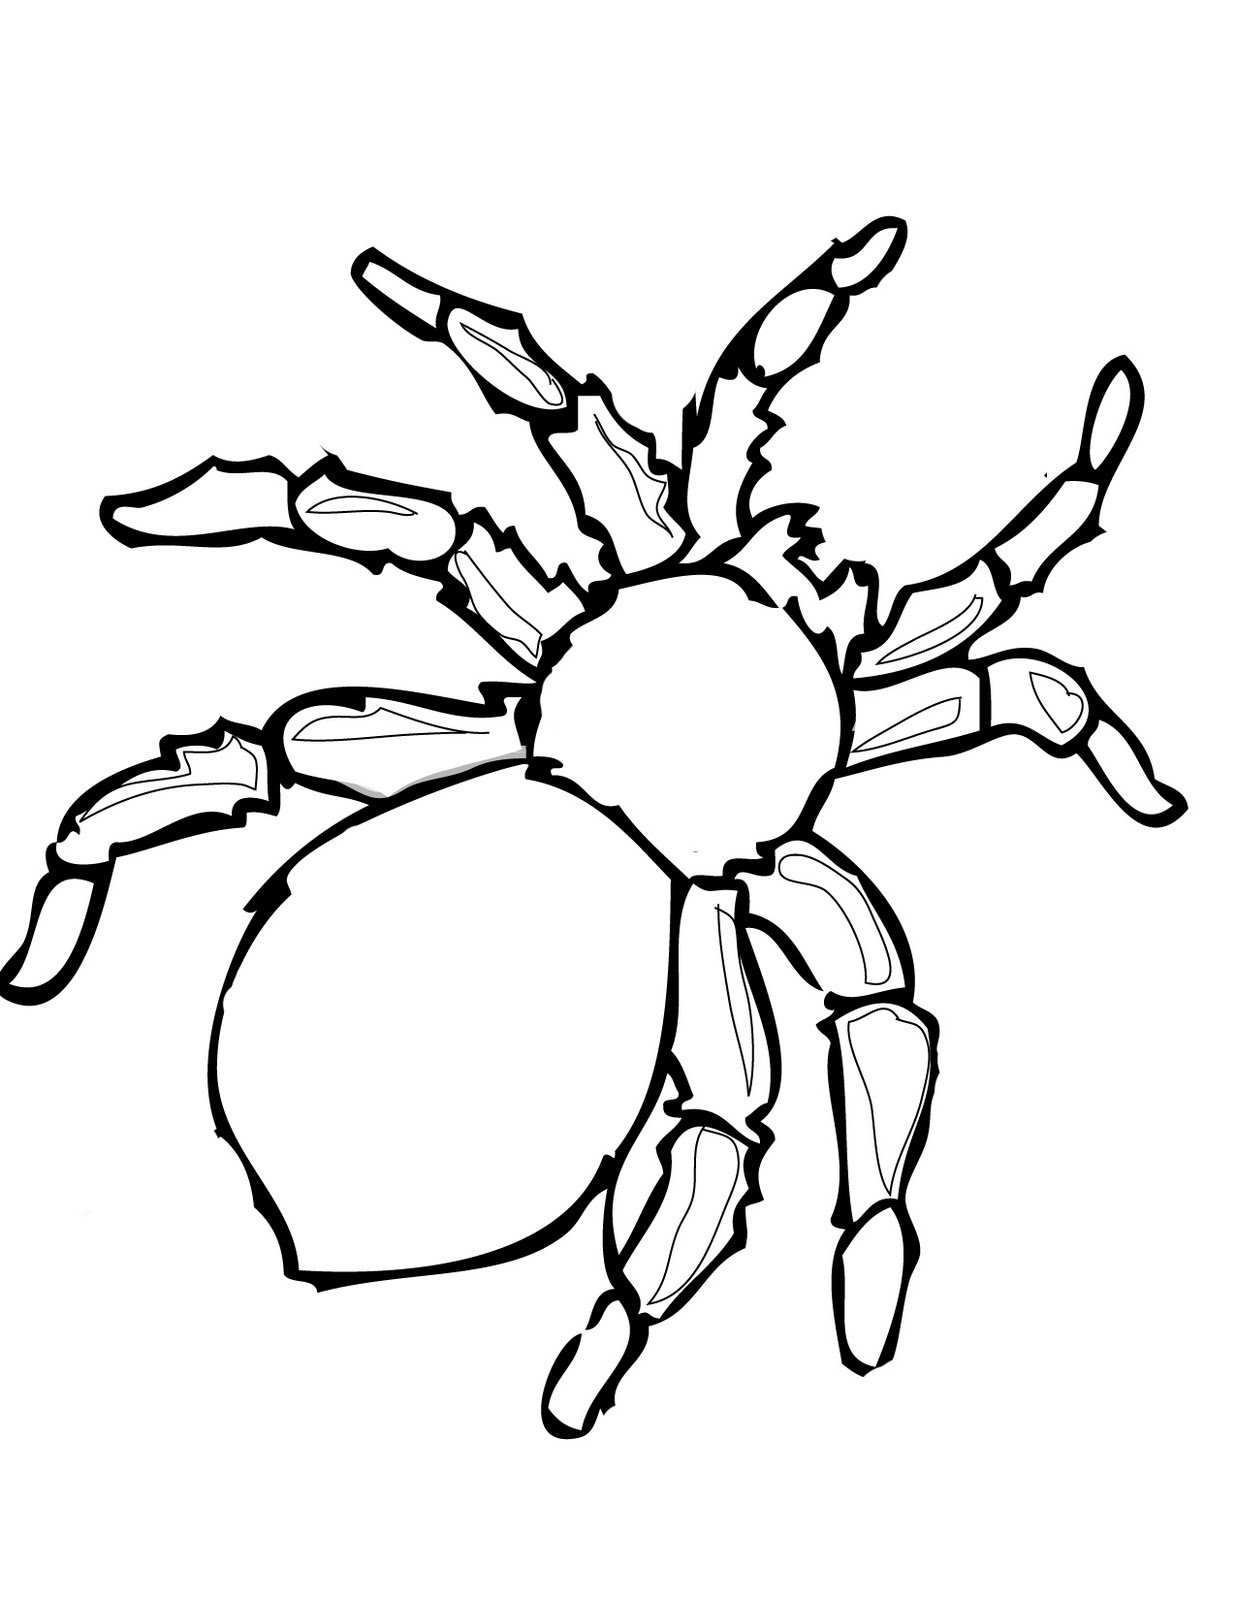 1236x1600 Cozy Design Halloween Spider Coloring Pages Spider In Web Coloring